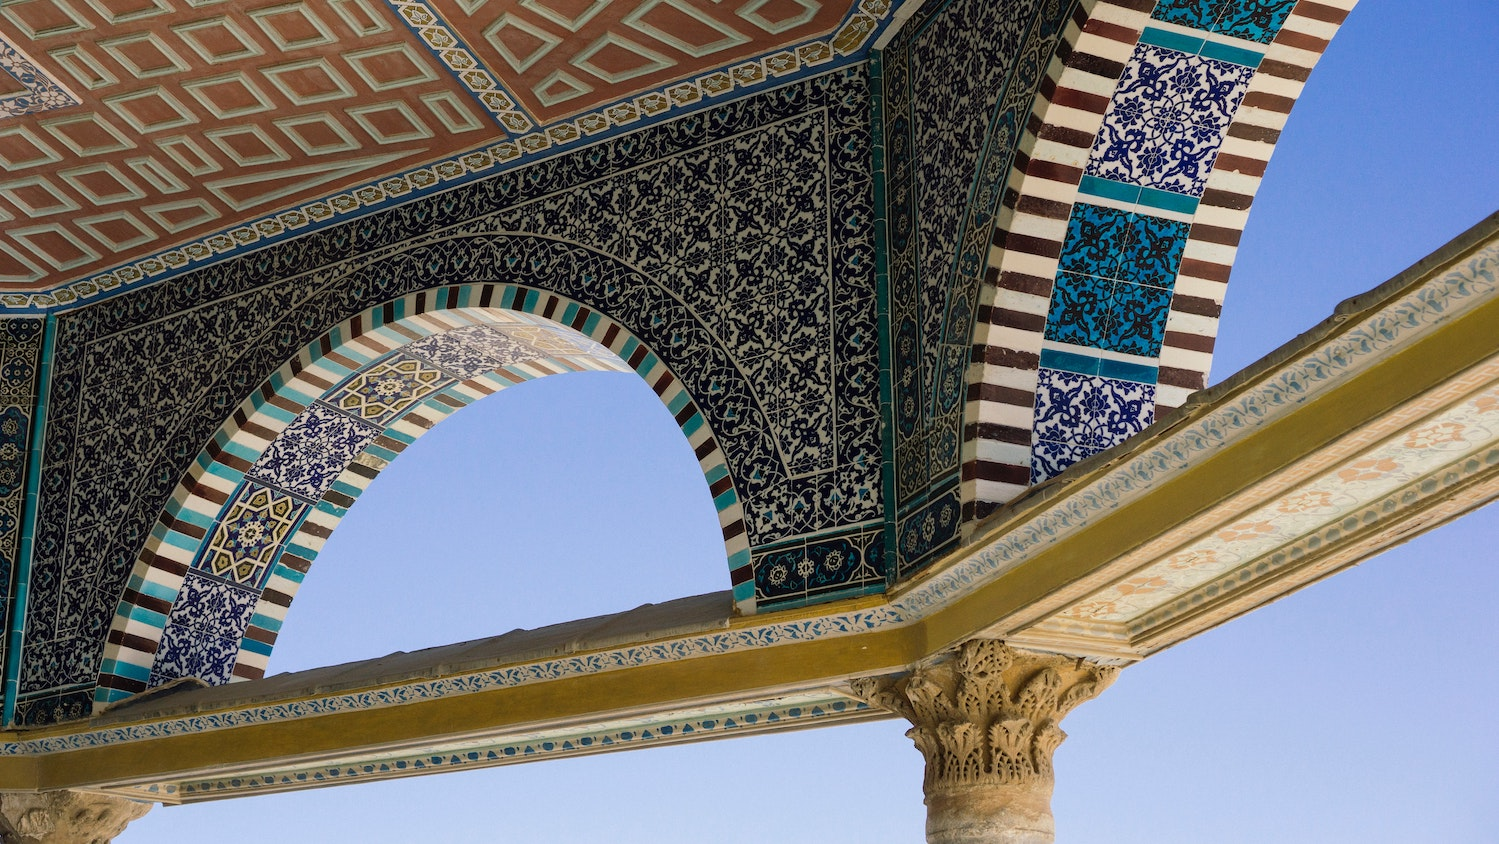 Arches with blue, green, and gold mosaic tiles